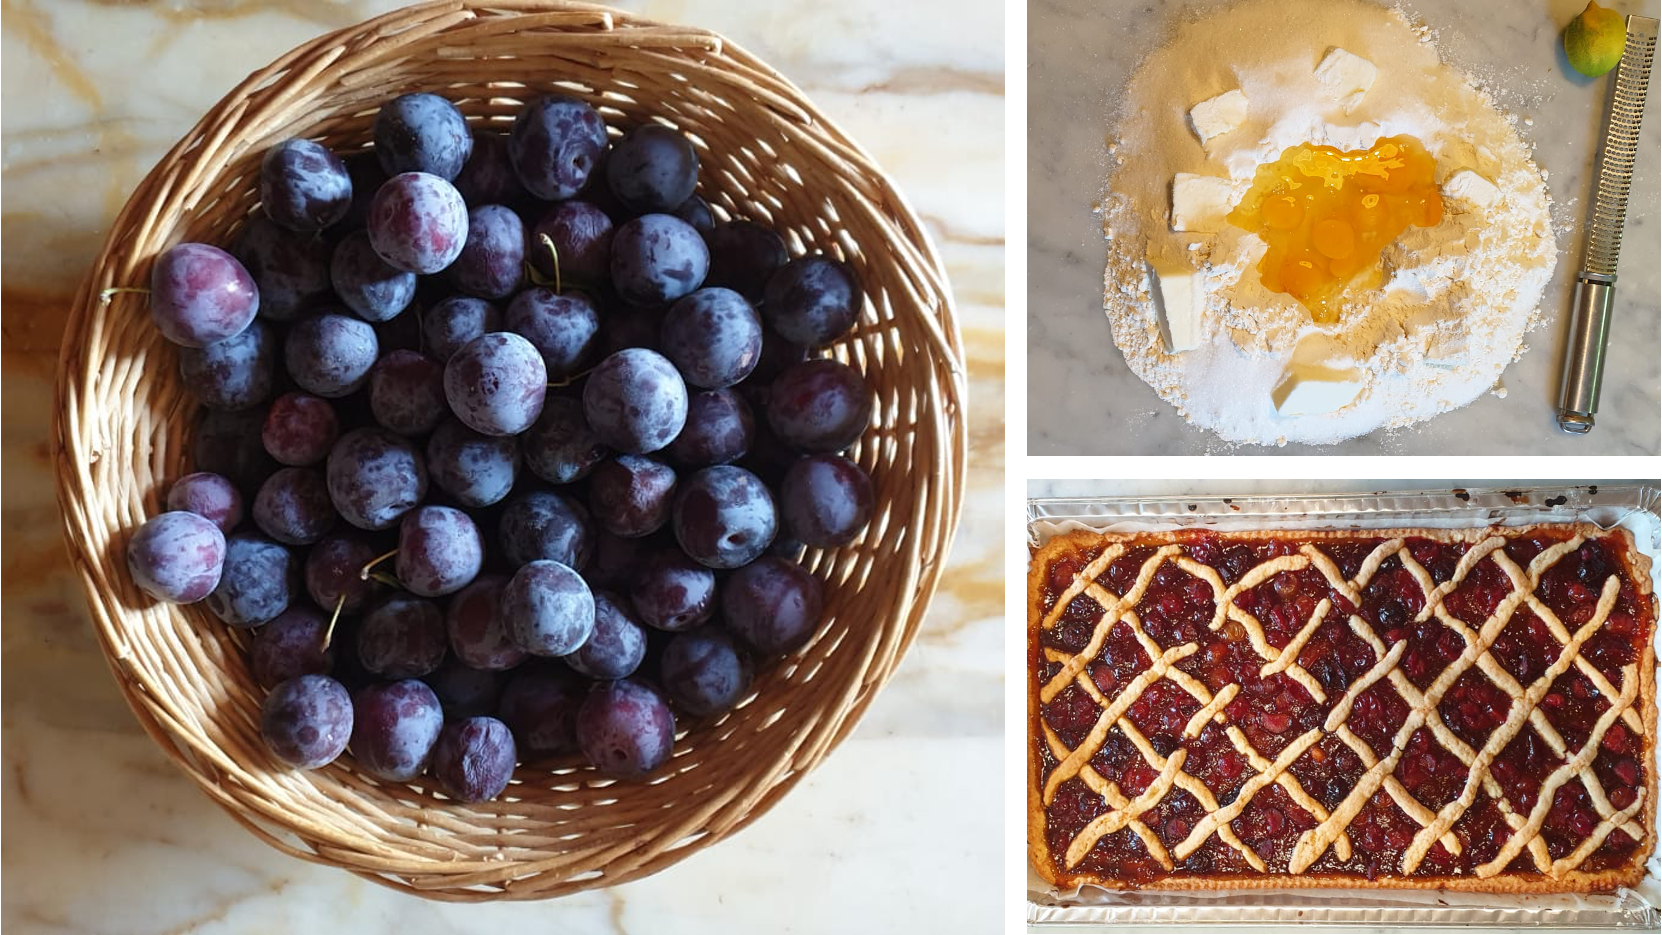 Three photos: Basket of plums; pile of flour, butter and eggs on marble counter; finished plum cake with lattice top